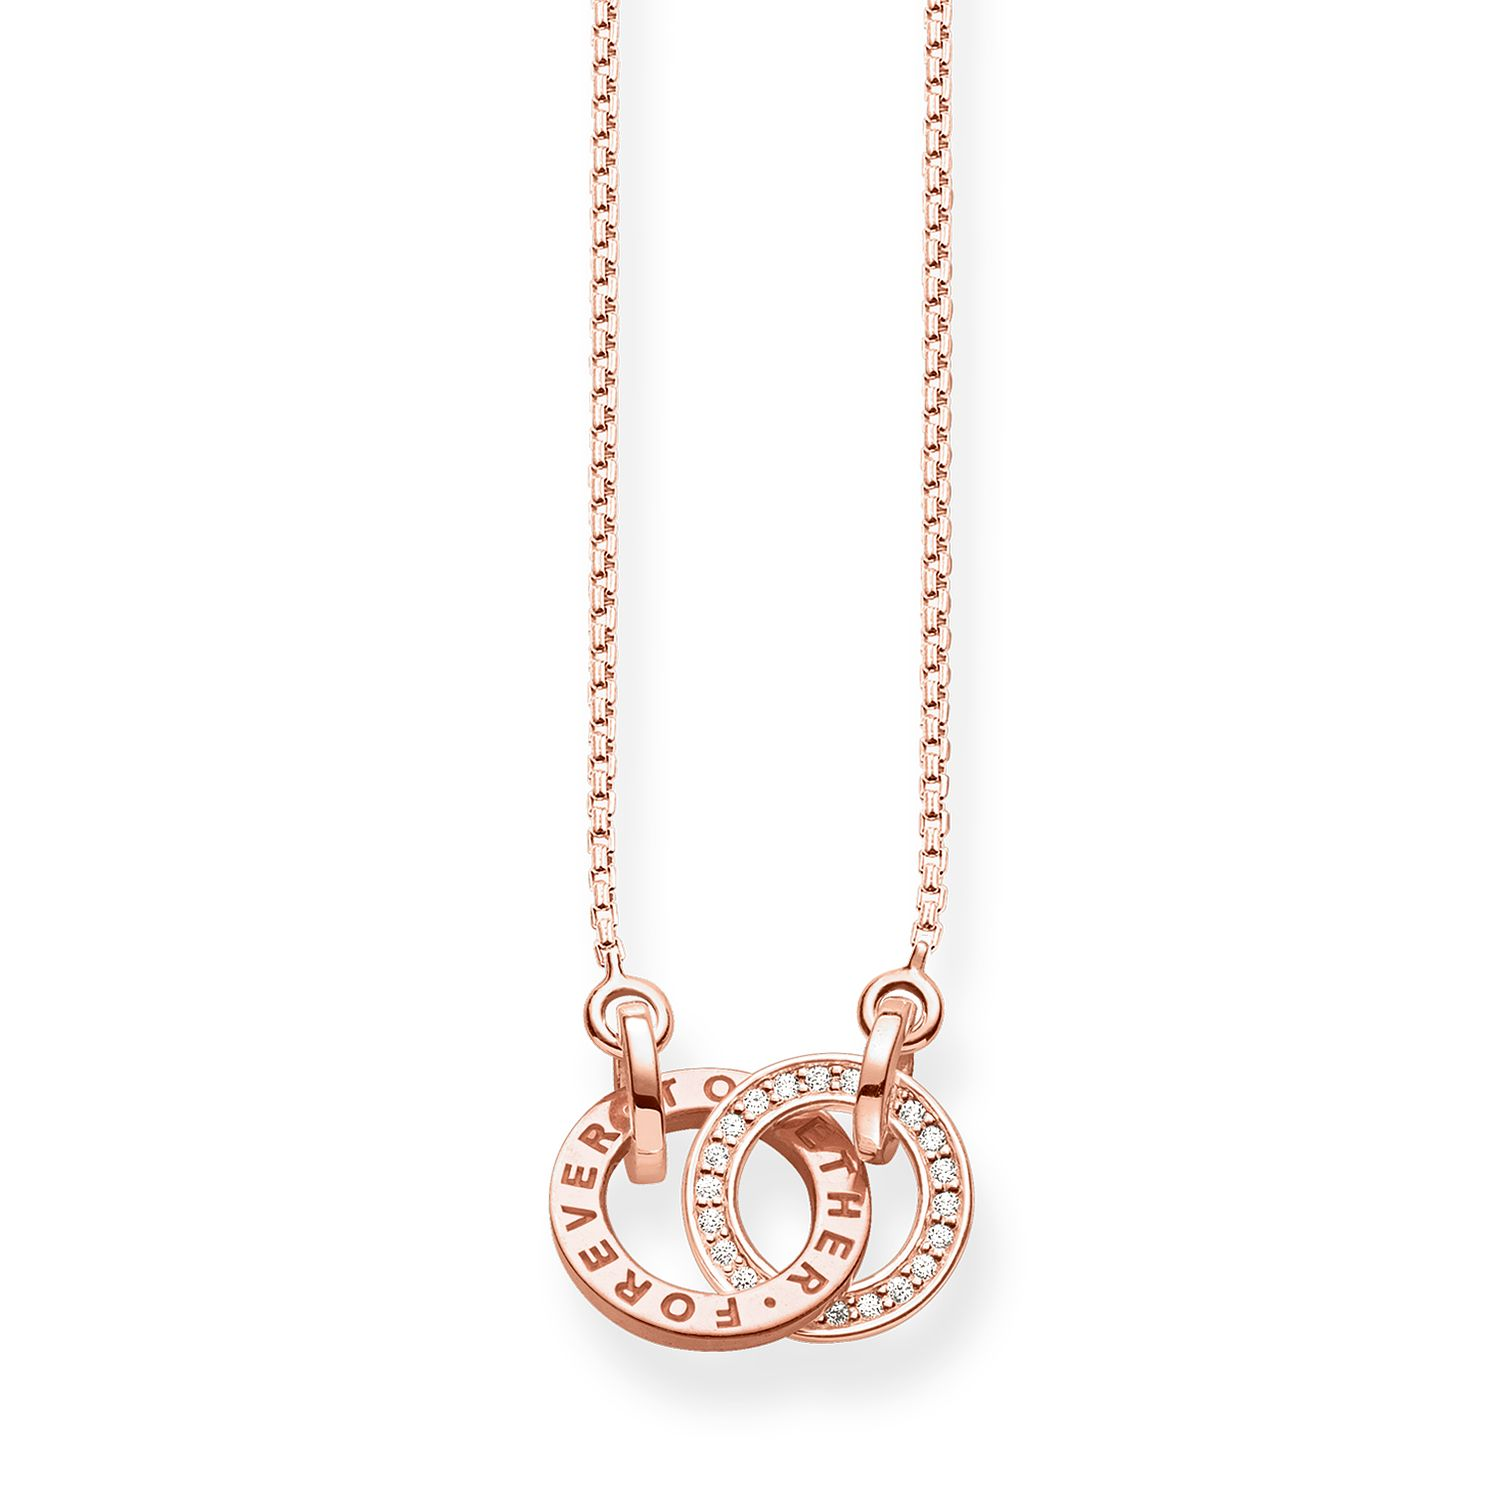 Thomas Sabo Together Rose Gold Plated Circular Necklace - Product number 8227098